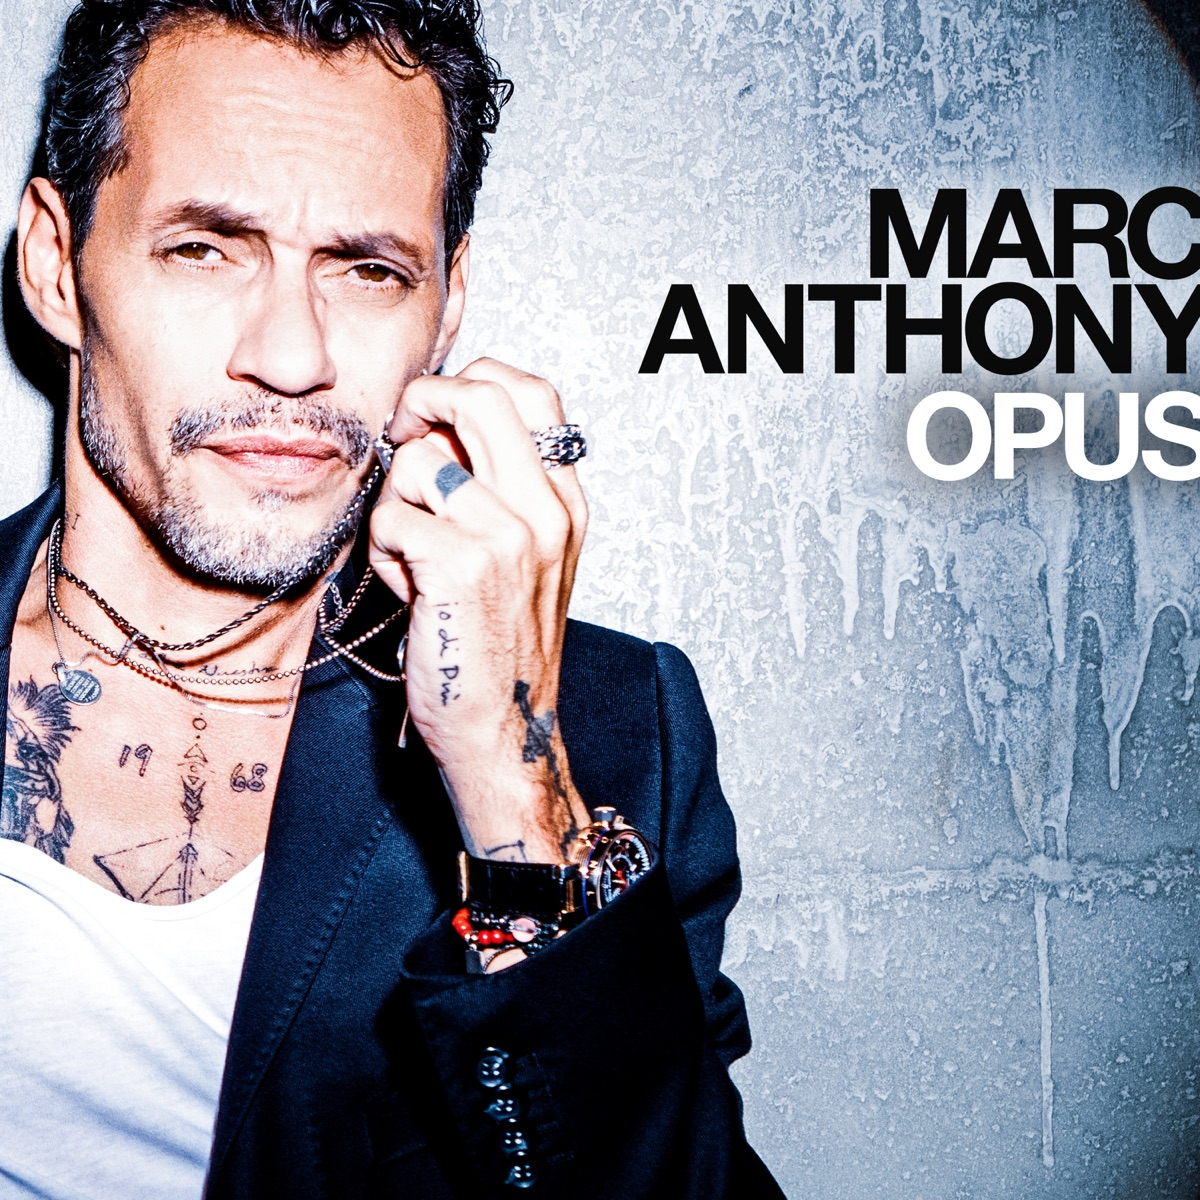 OPUS Marc Anthony CD cover